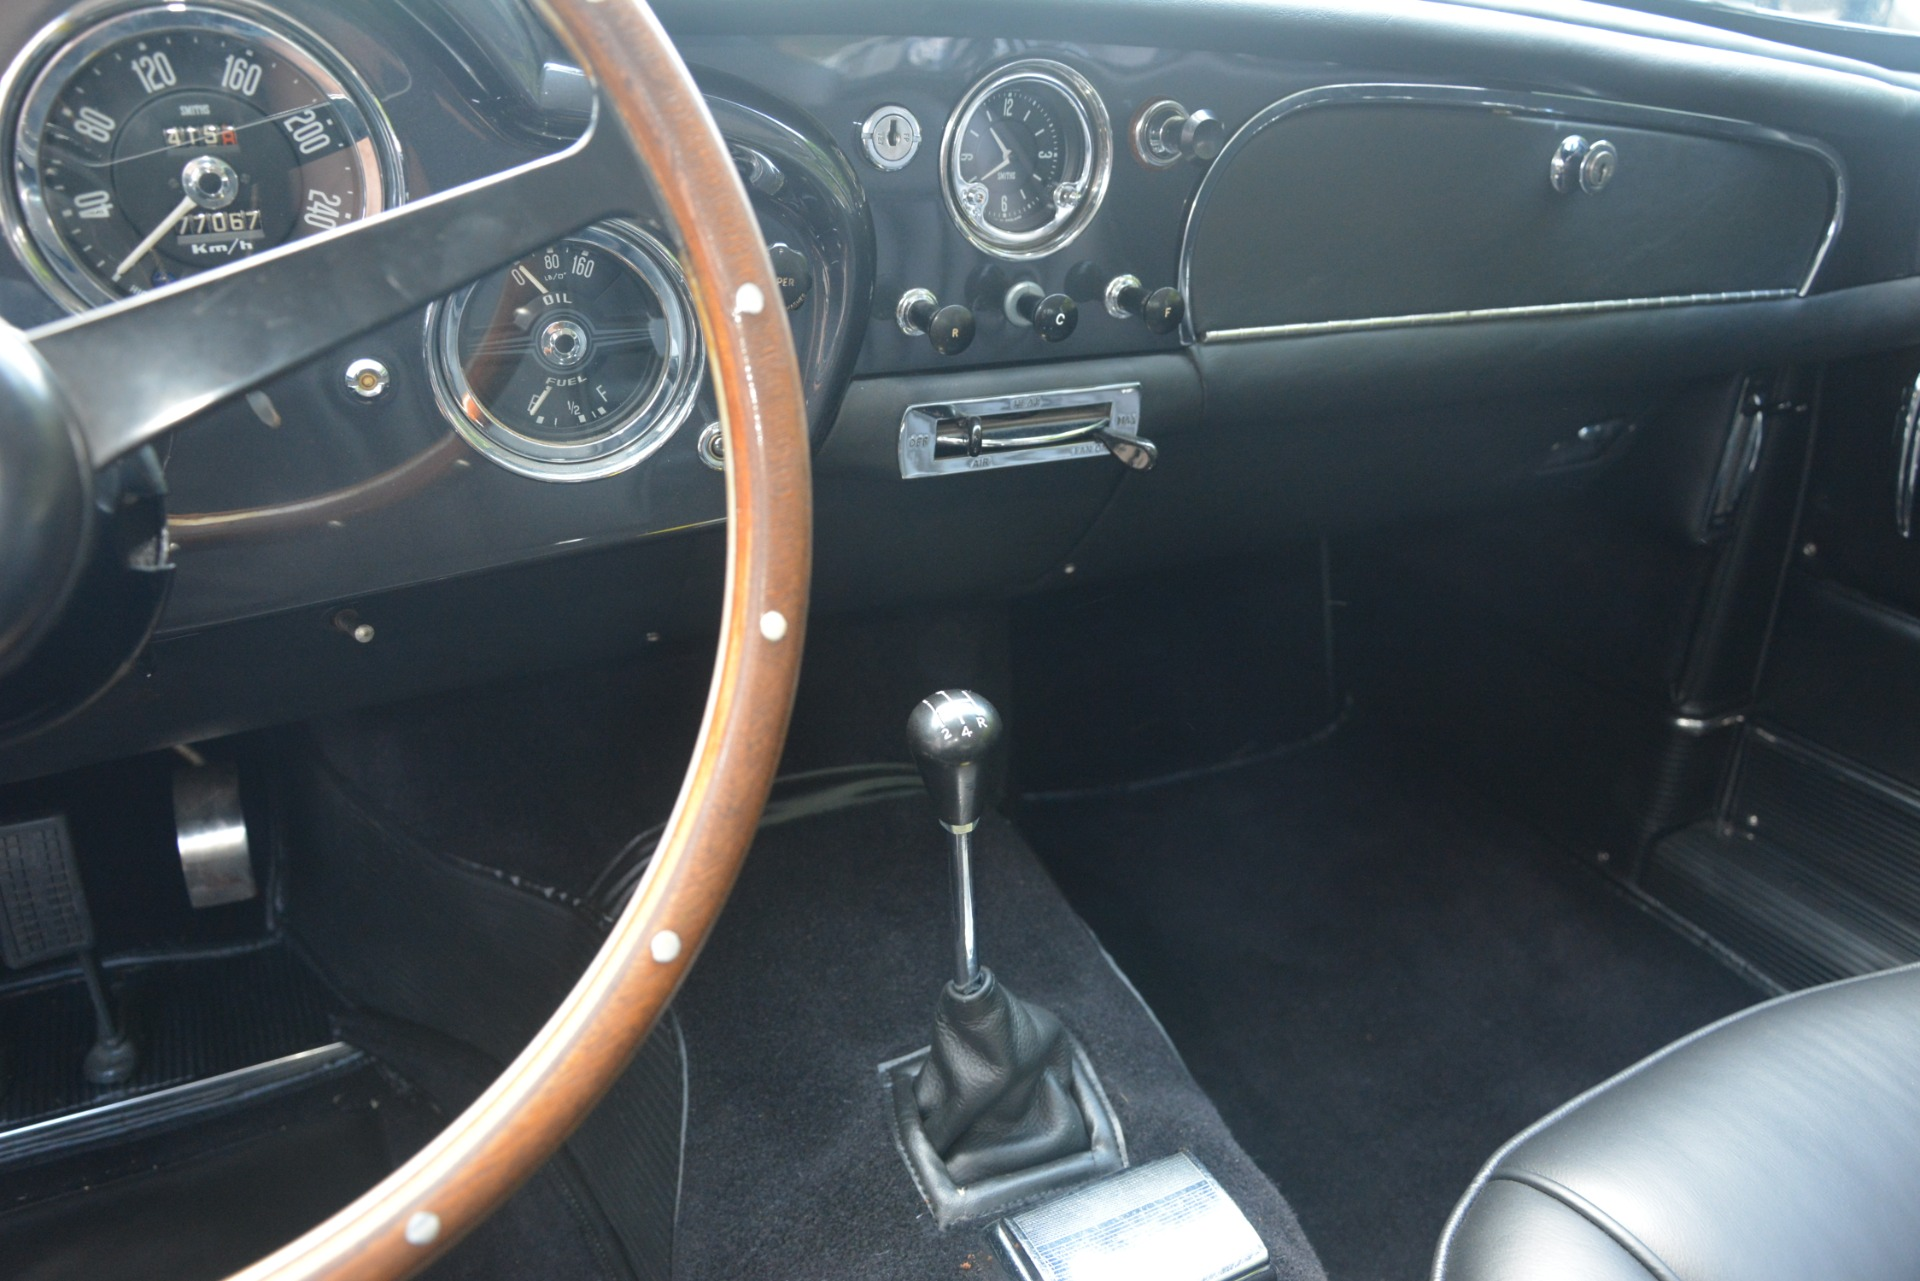 Used 1961 Aston Martin DB4 Series IV Coupe For Sale In Greenwich, CT 3186_p31